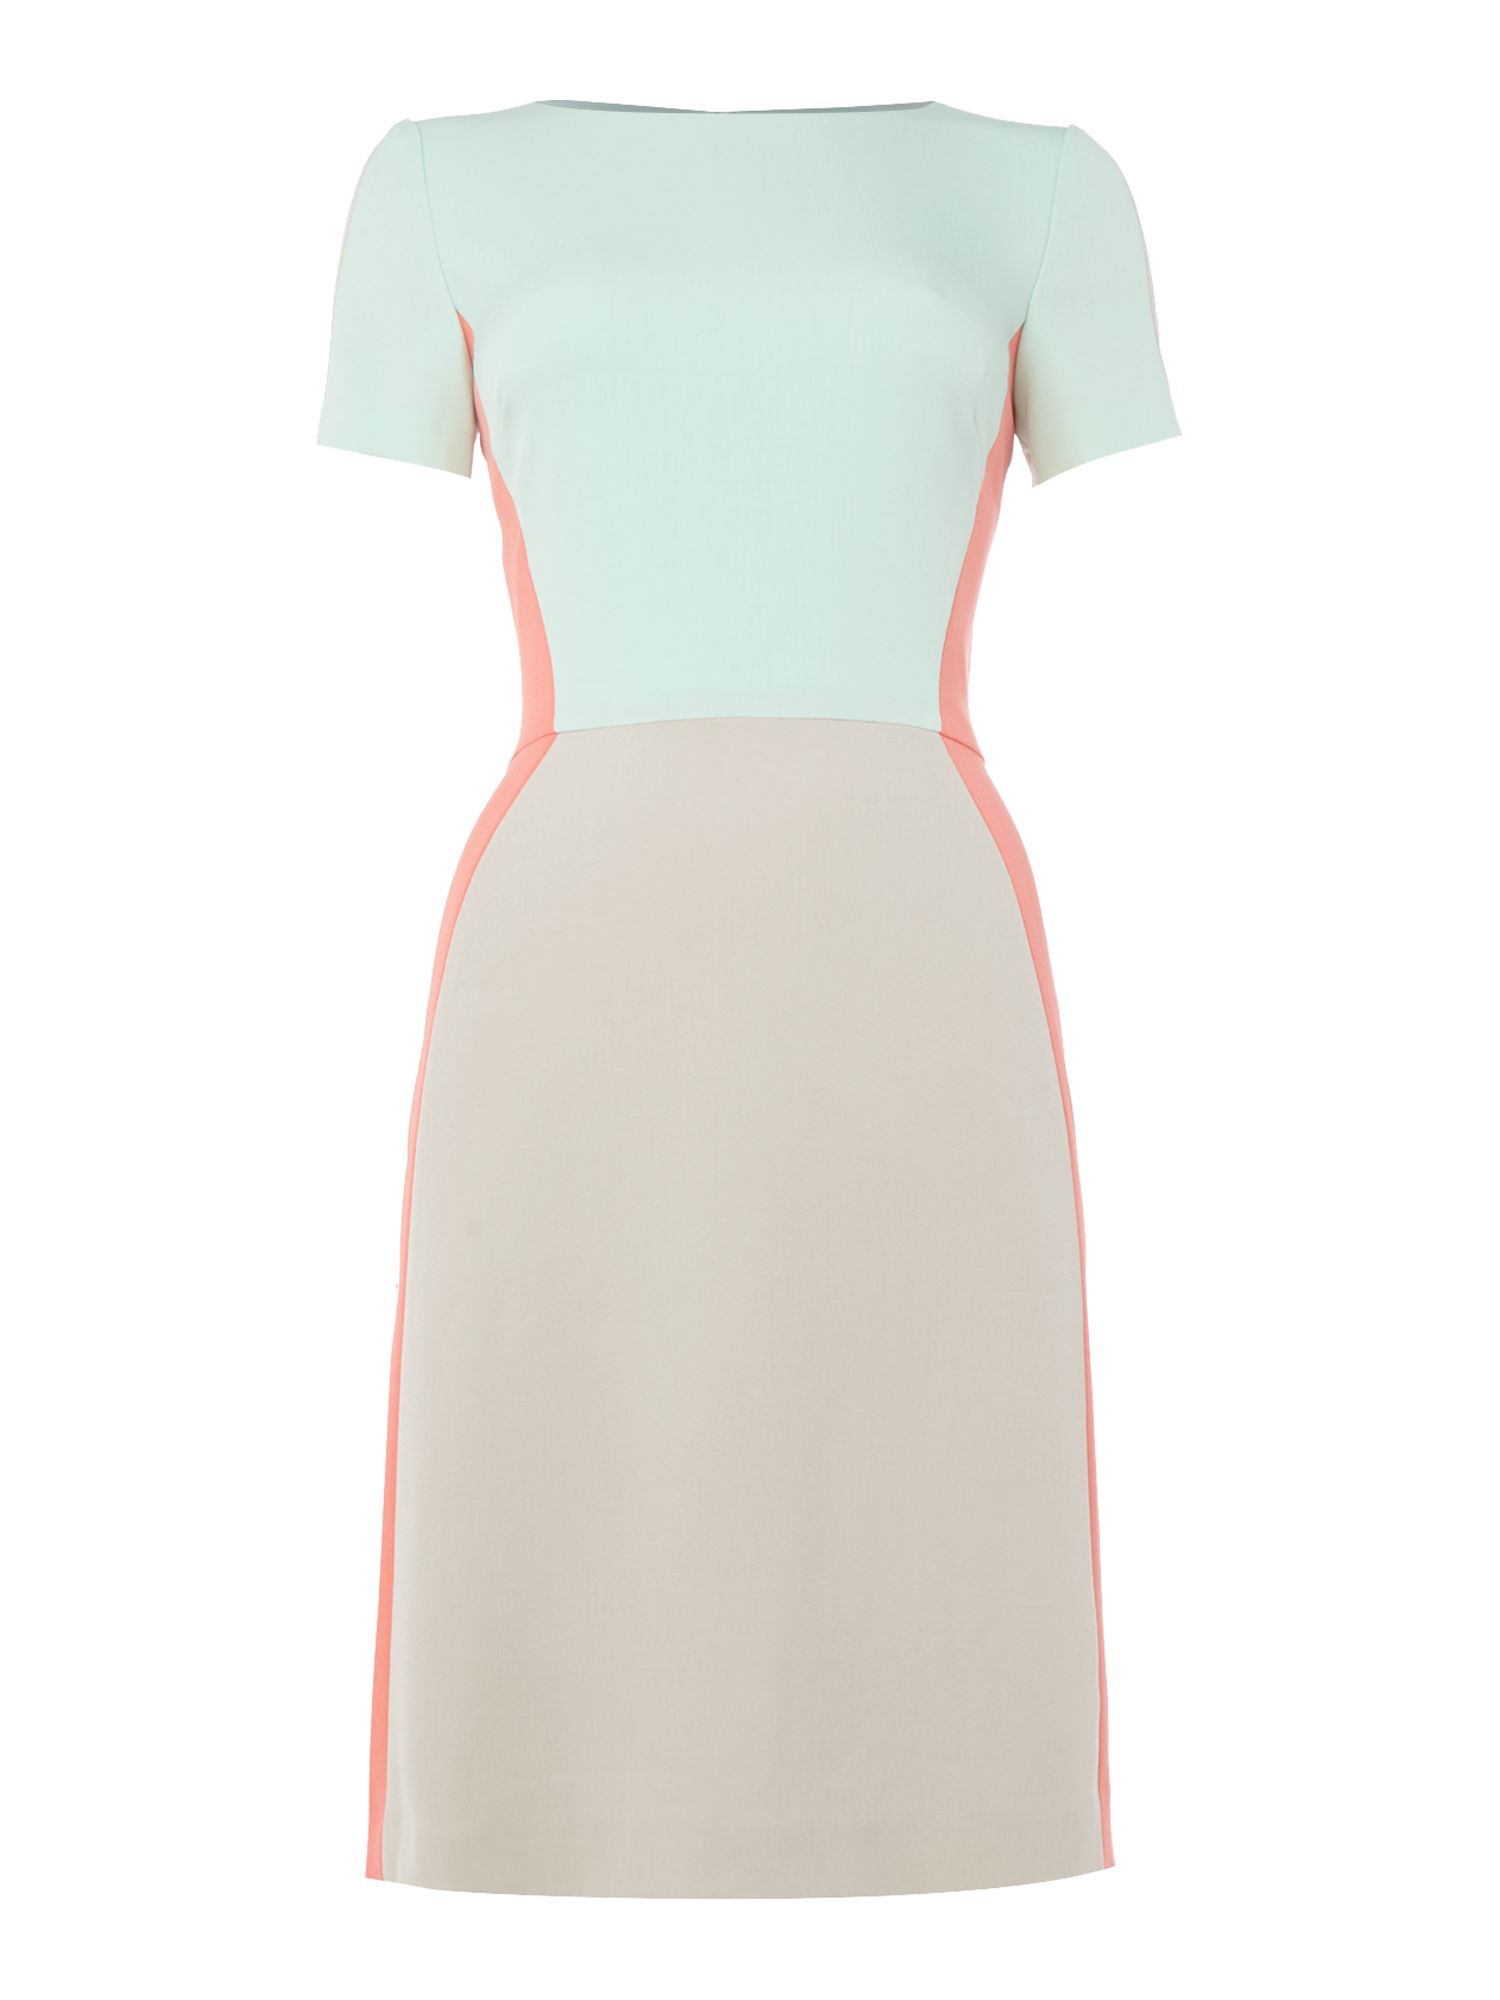 Tahari ASL Short Sleeved Colour Block Dress, Multi-Coloured